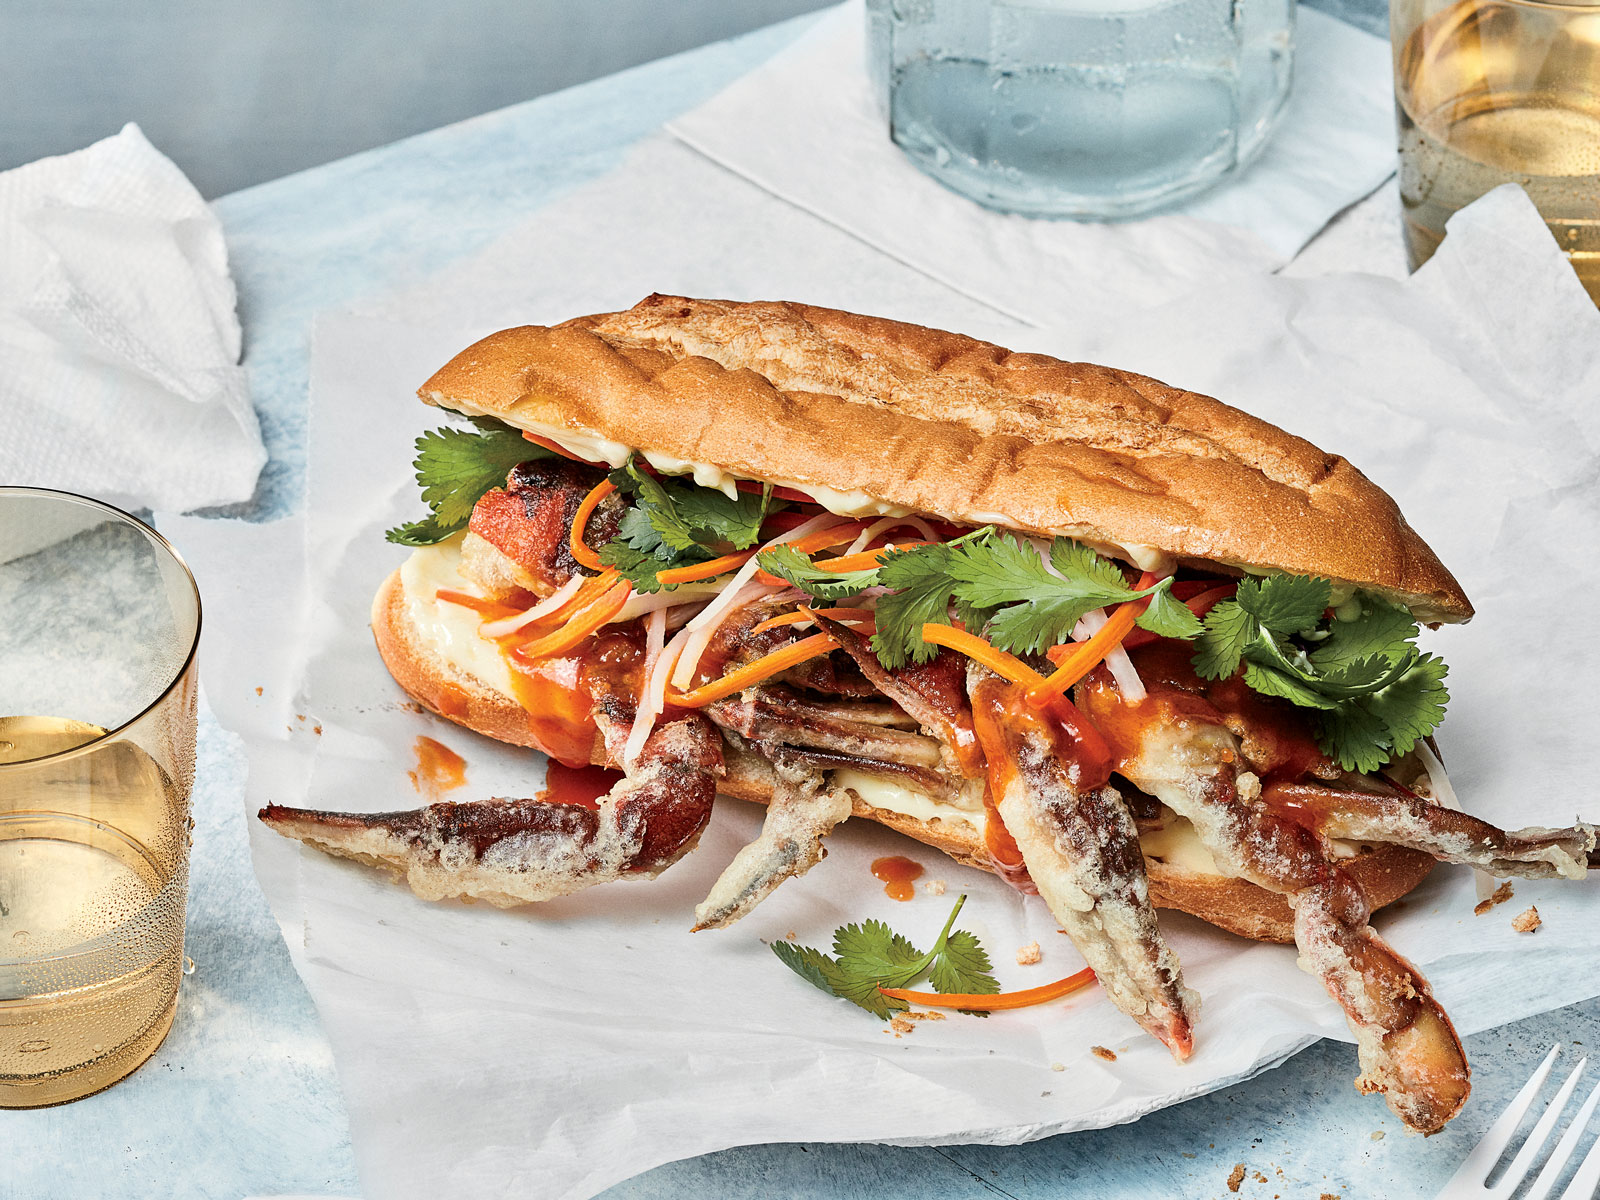 Crispy Soft-Shell Crab Banh Mi with Tamarind Sauce